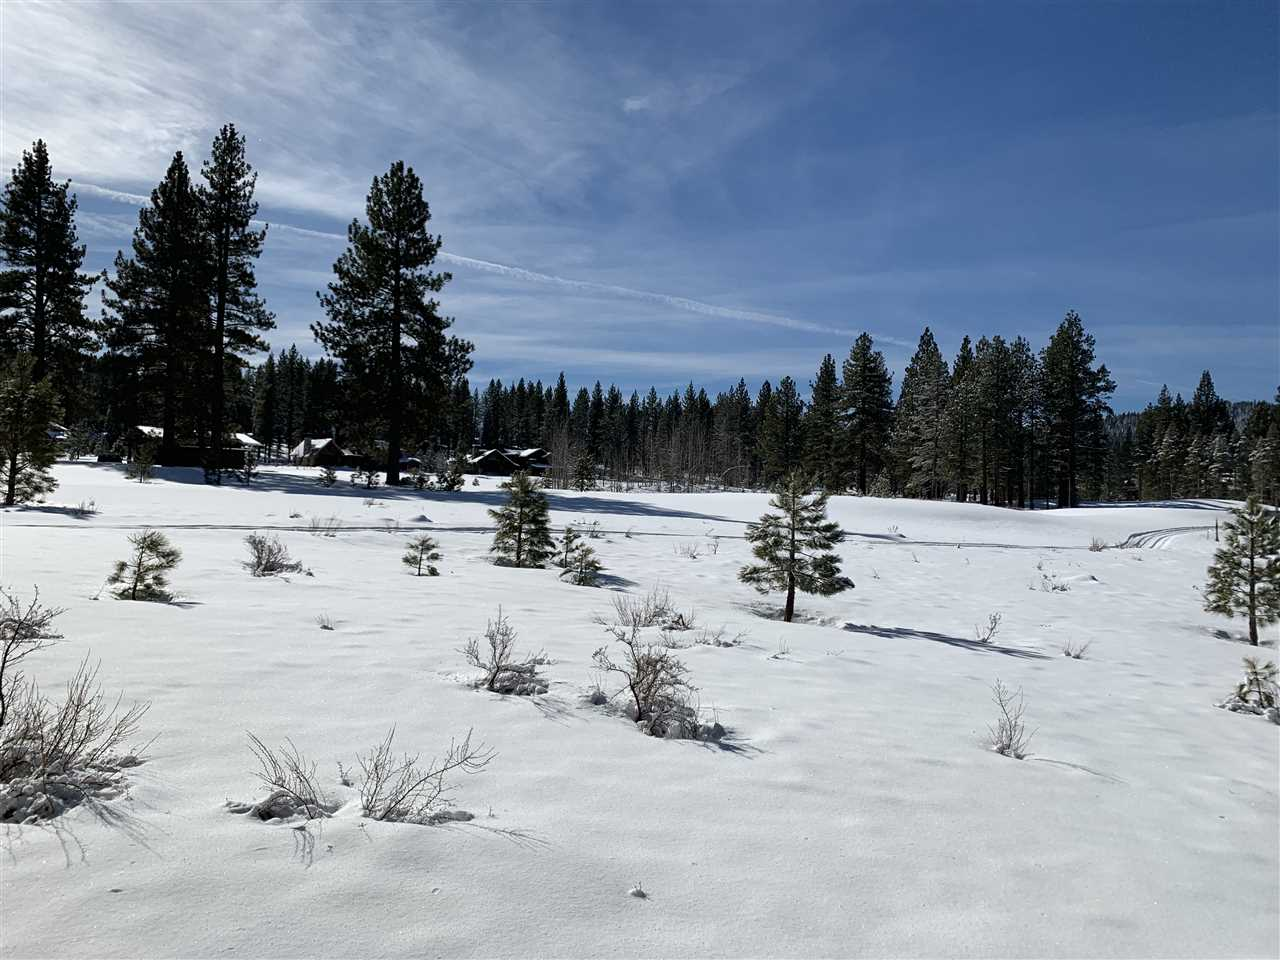 Image for 13188 Snowshoe Thompson, Truckee, CA 96161